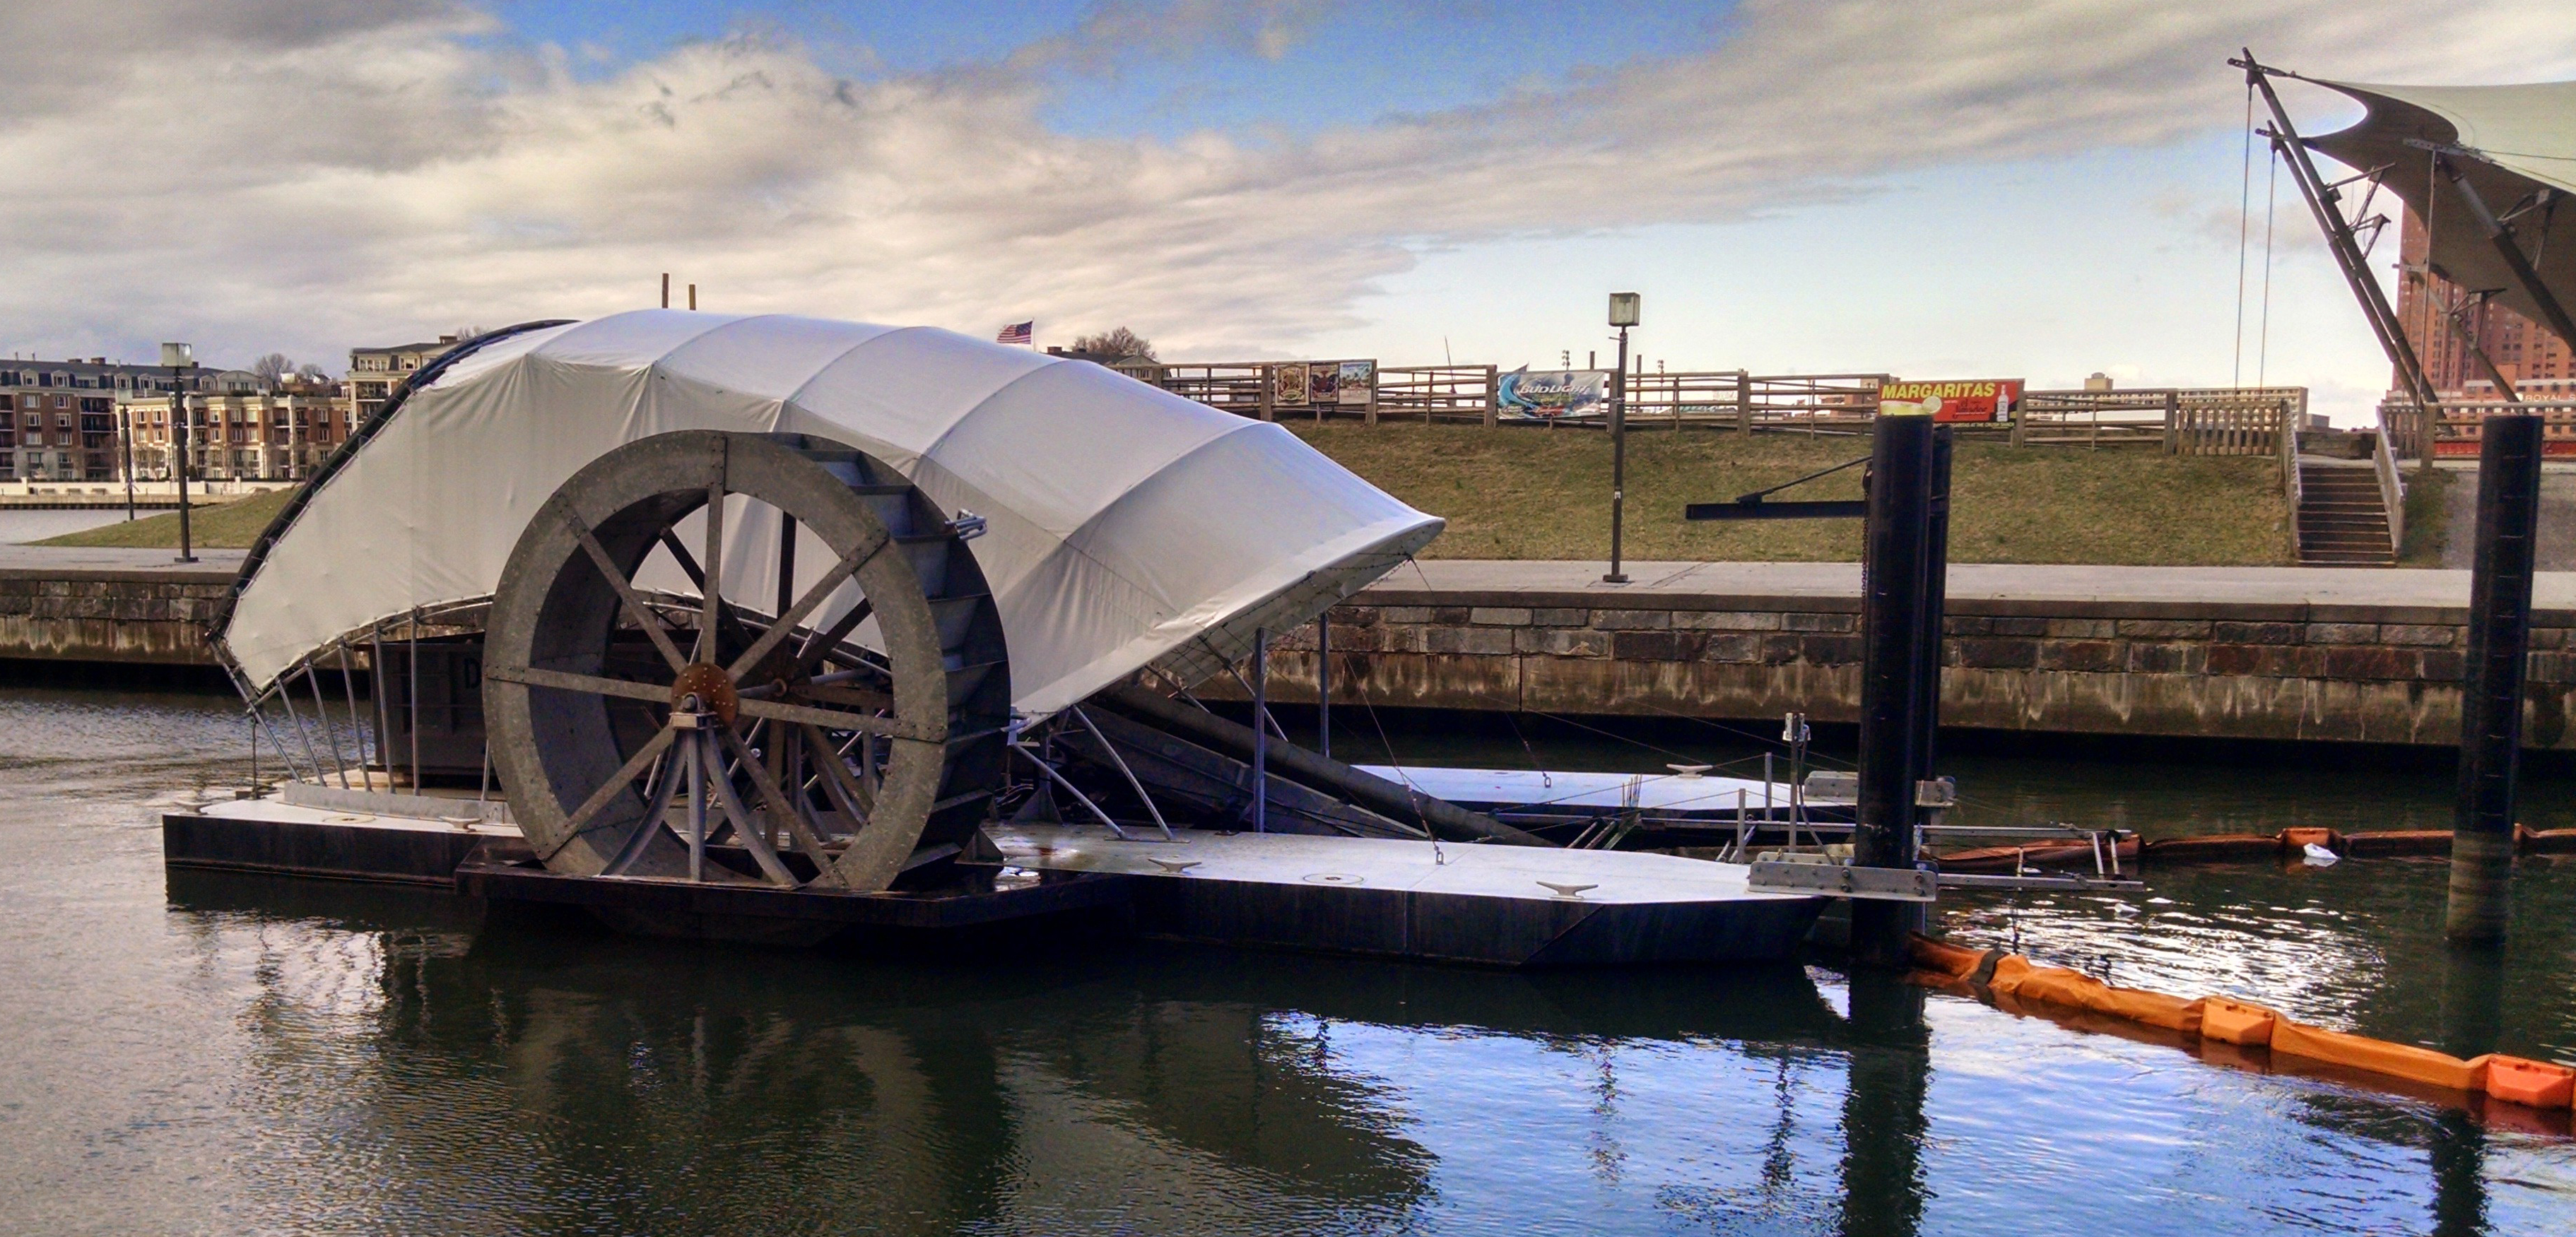 Baltimore S Solar Powered Water Wheel Can Devour 50 000 Pounds Of Harbor Trash Every Day Inhabitat Green Design Innovation Ture